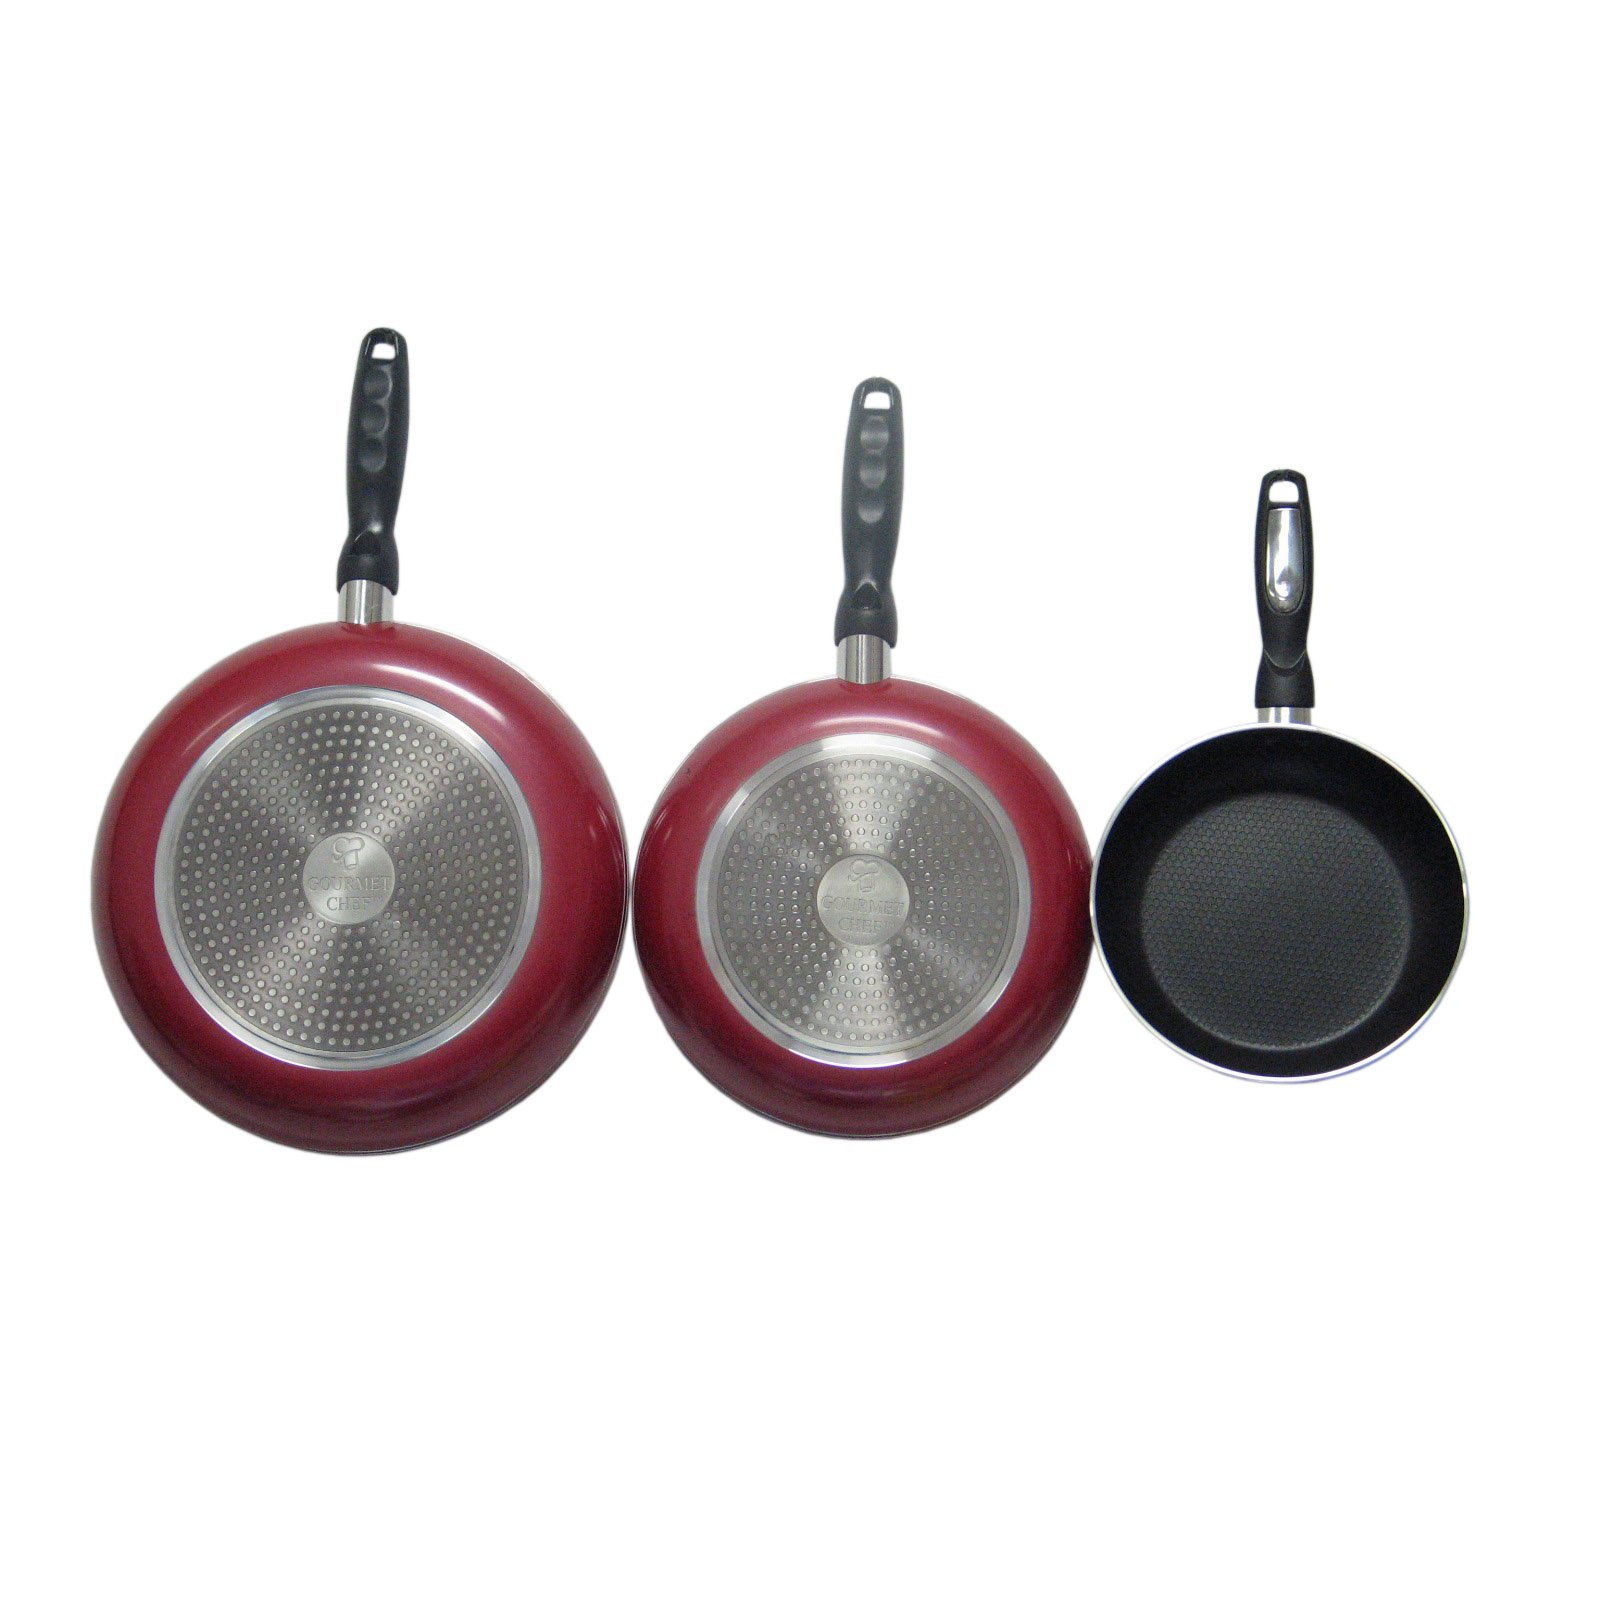 3 Piece Red Nonstick Fry Pans, Heavy-Duty, Ergonomically Designed , Round Shape, Good Quality, Aluminum Construction, Oven Safe, Dual-Riveted, Everyday Use, Eco-friendly, Easy Cleanup, Mahogany